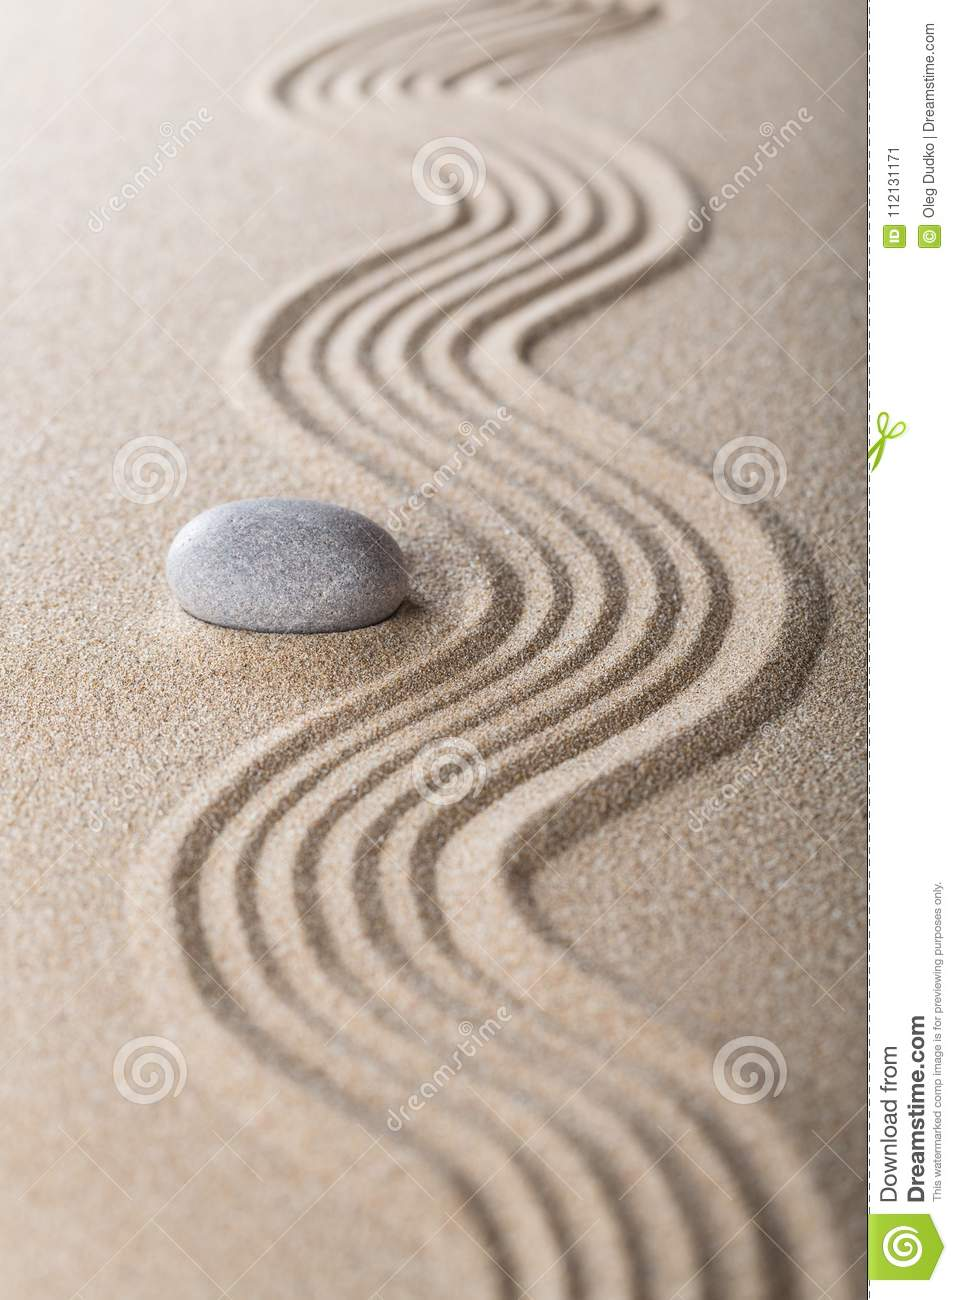 Zen Garden With Raked Sand And A Smooth Stone Stock Image Image